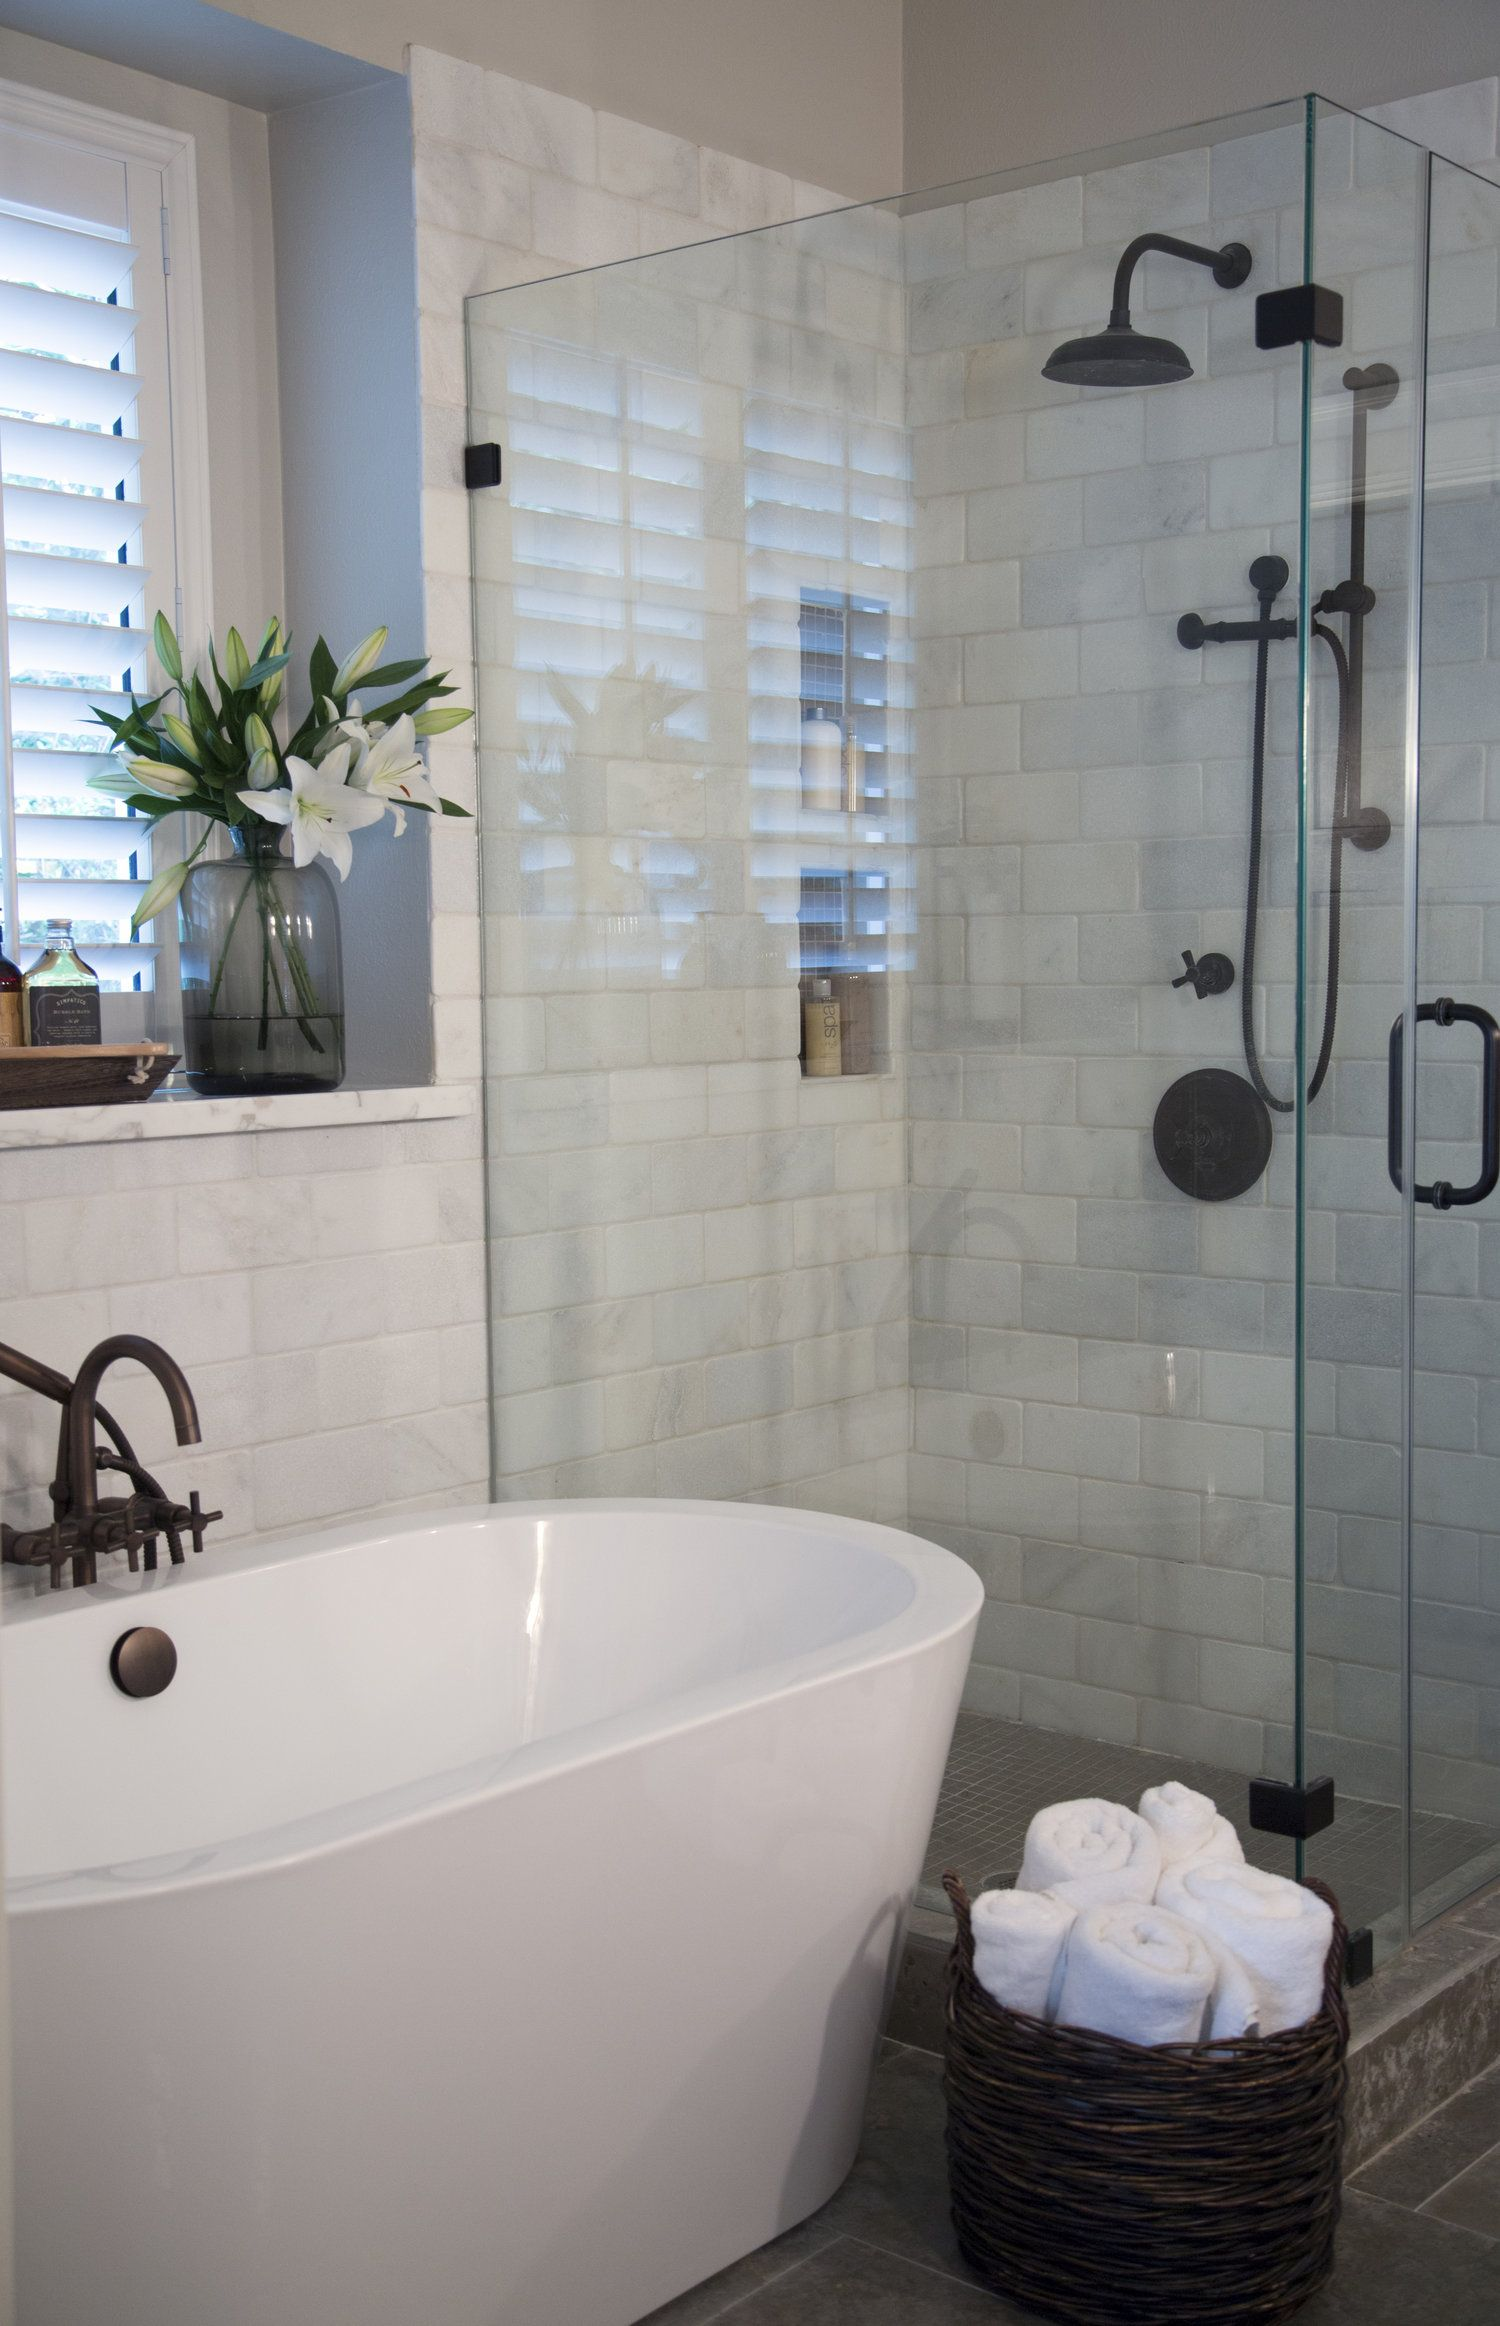 Before After A Confined Bathroom Is Uplifted With Bountiful Space